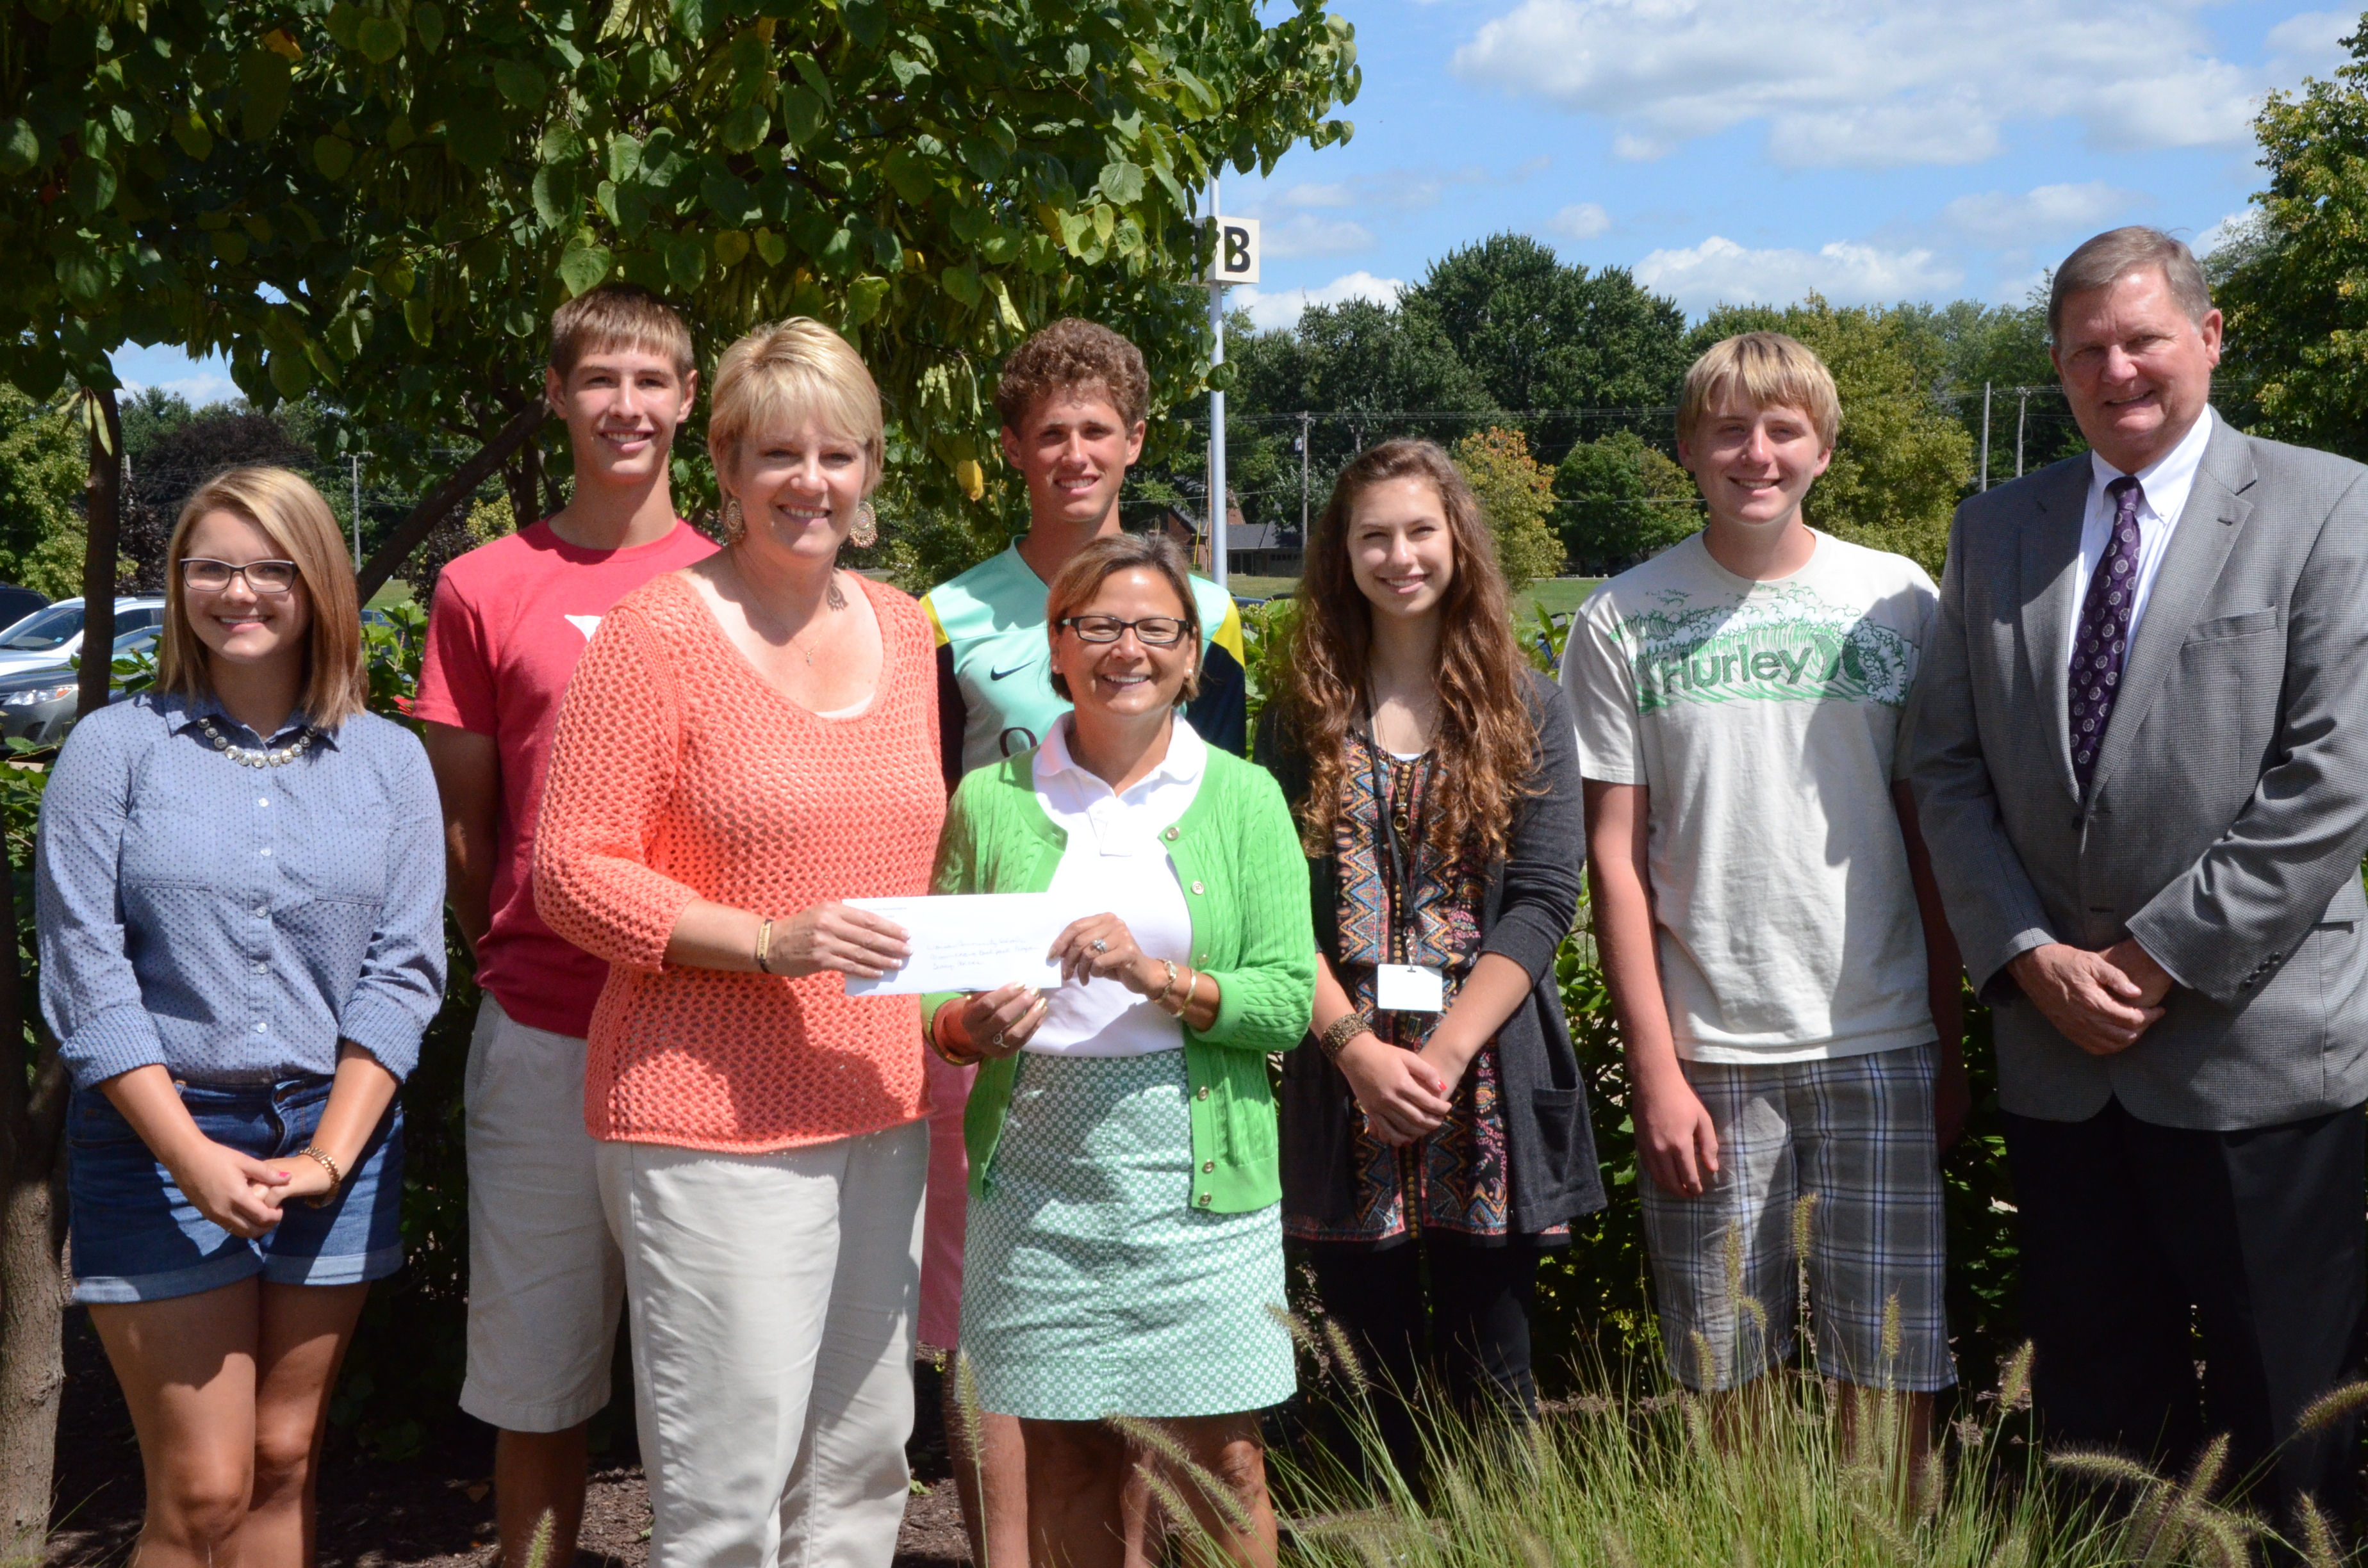 State Representative Rebecca Kubacki presents a check for $5,000 to Tracey Akers, Superintendent Dr. Craig Hintz and student organizers of the Boomerang Backpack Program.  (Photo by Alyssa Richardson)